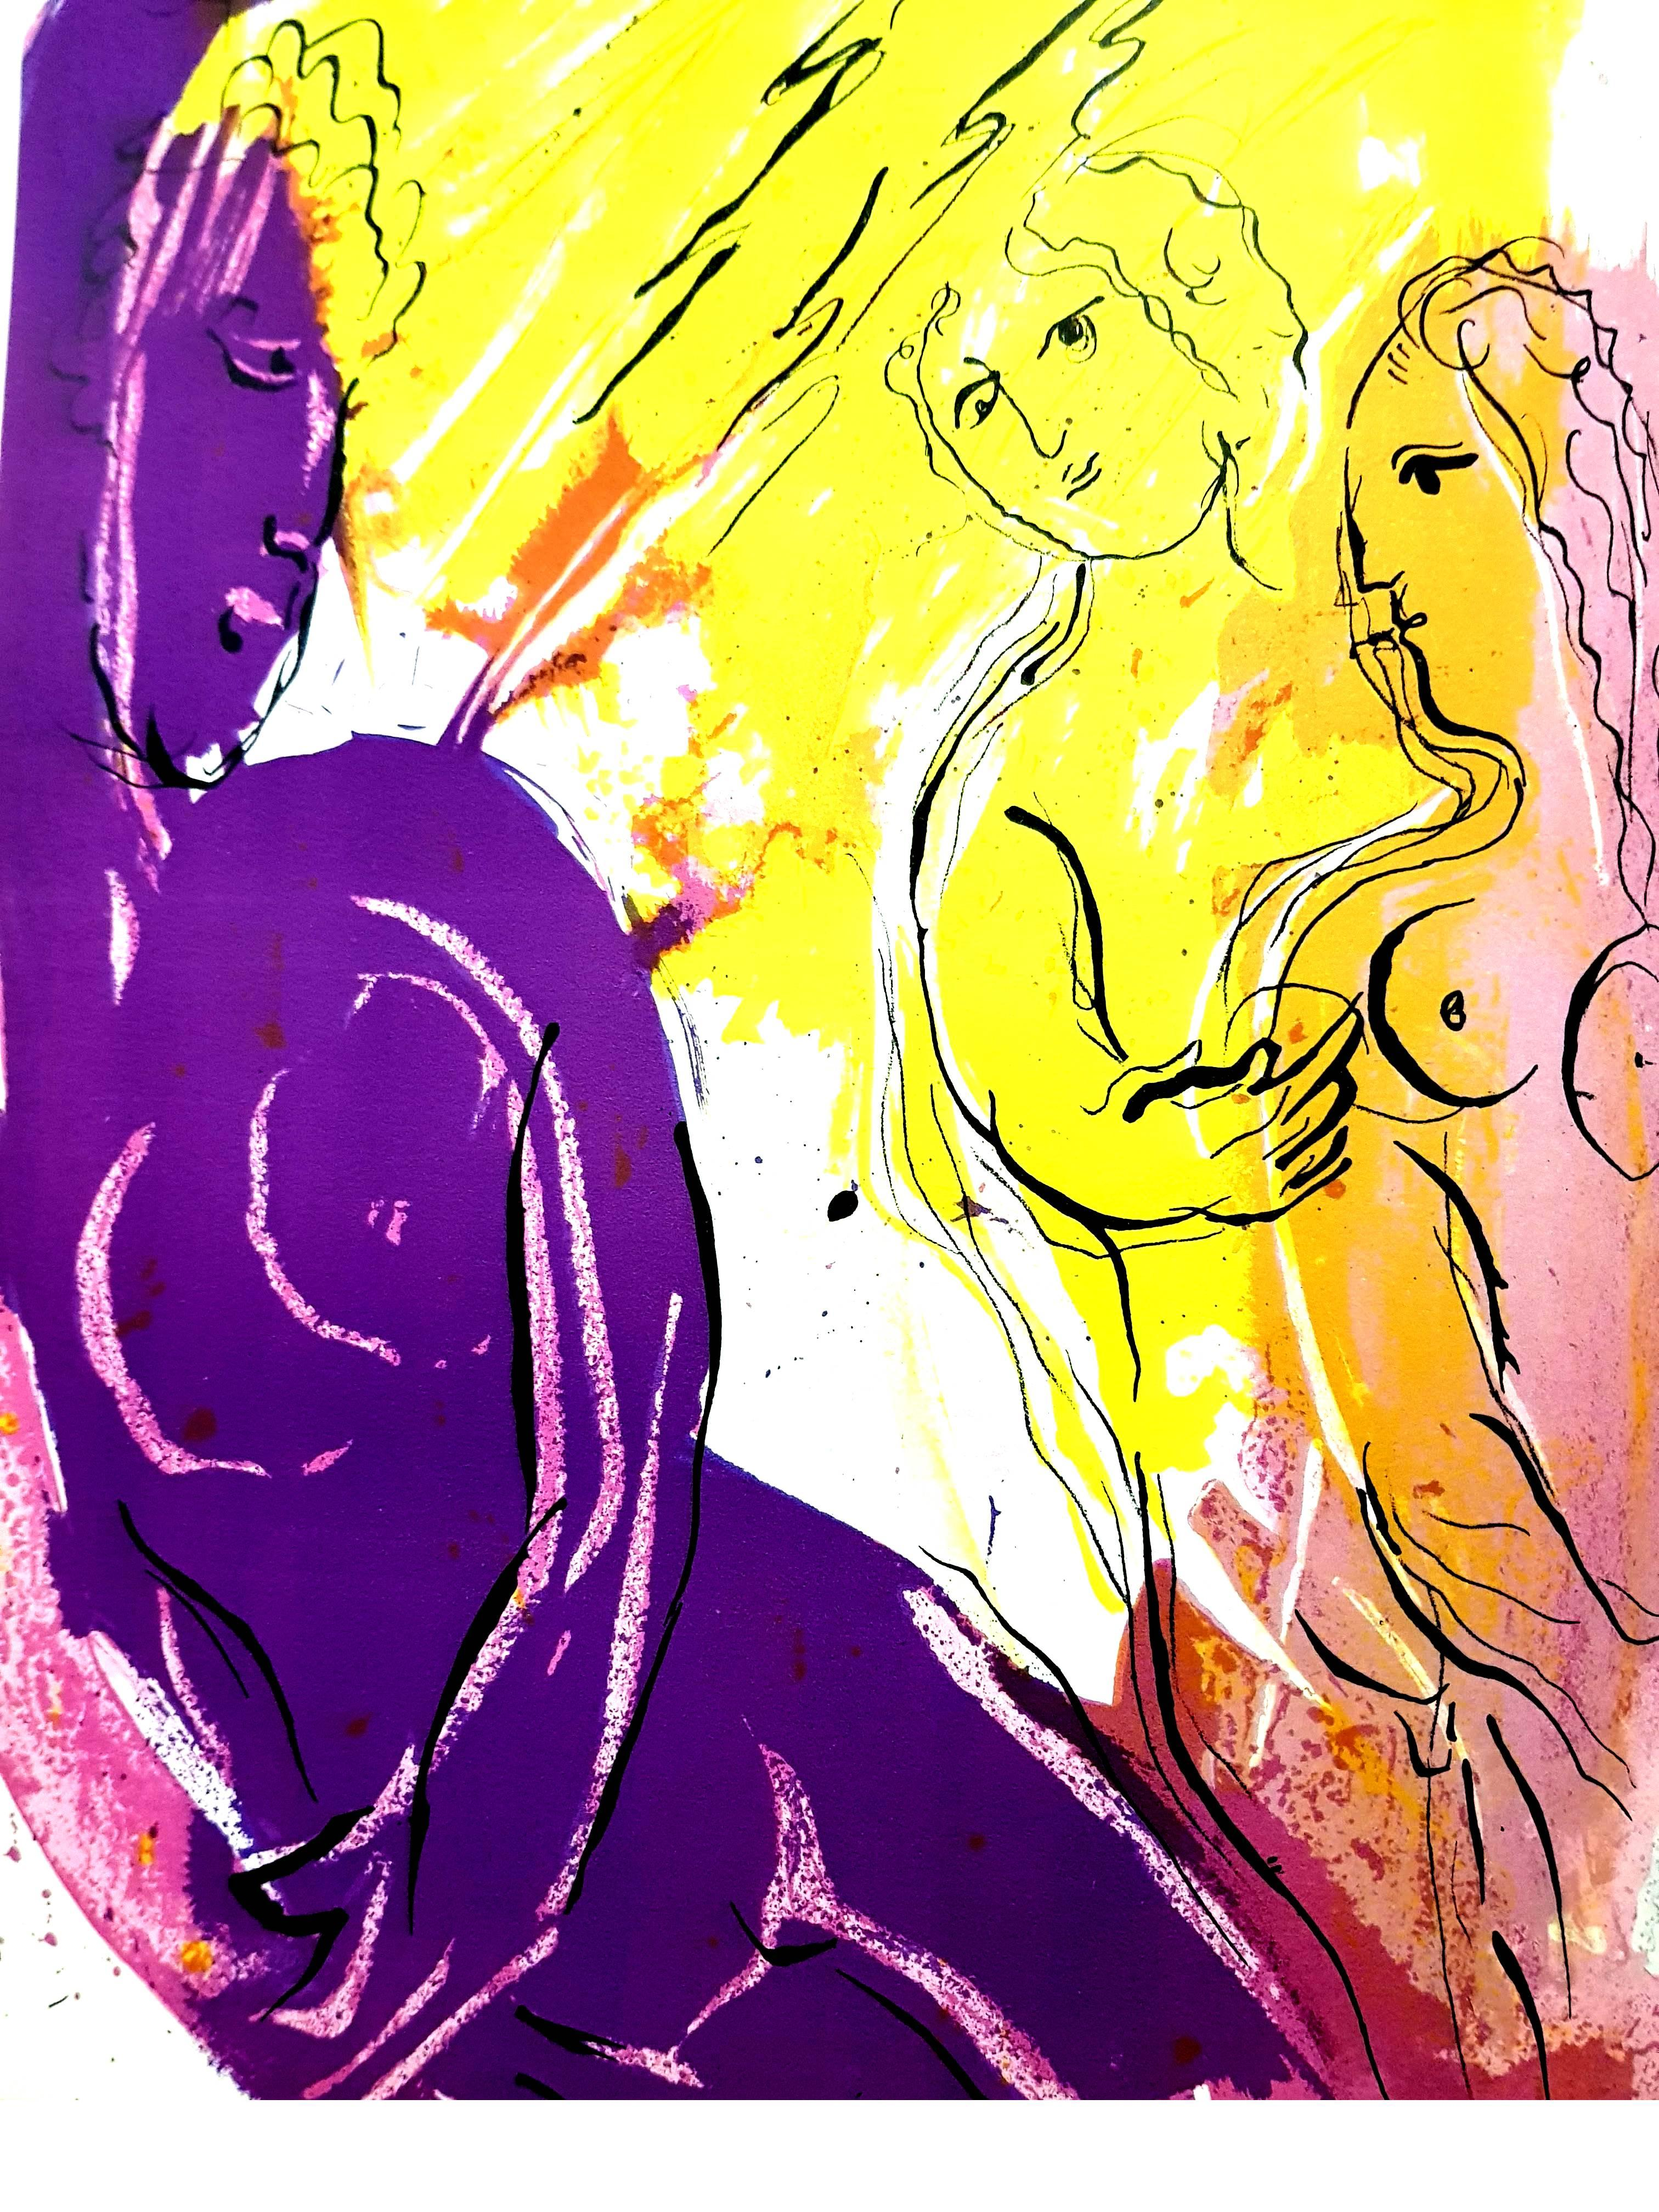 Marc Chagall - The Bible - Original Lithograph